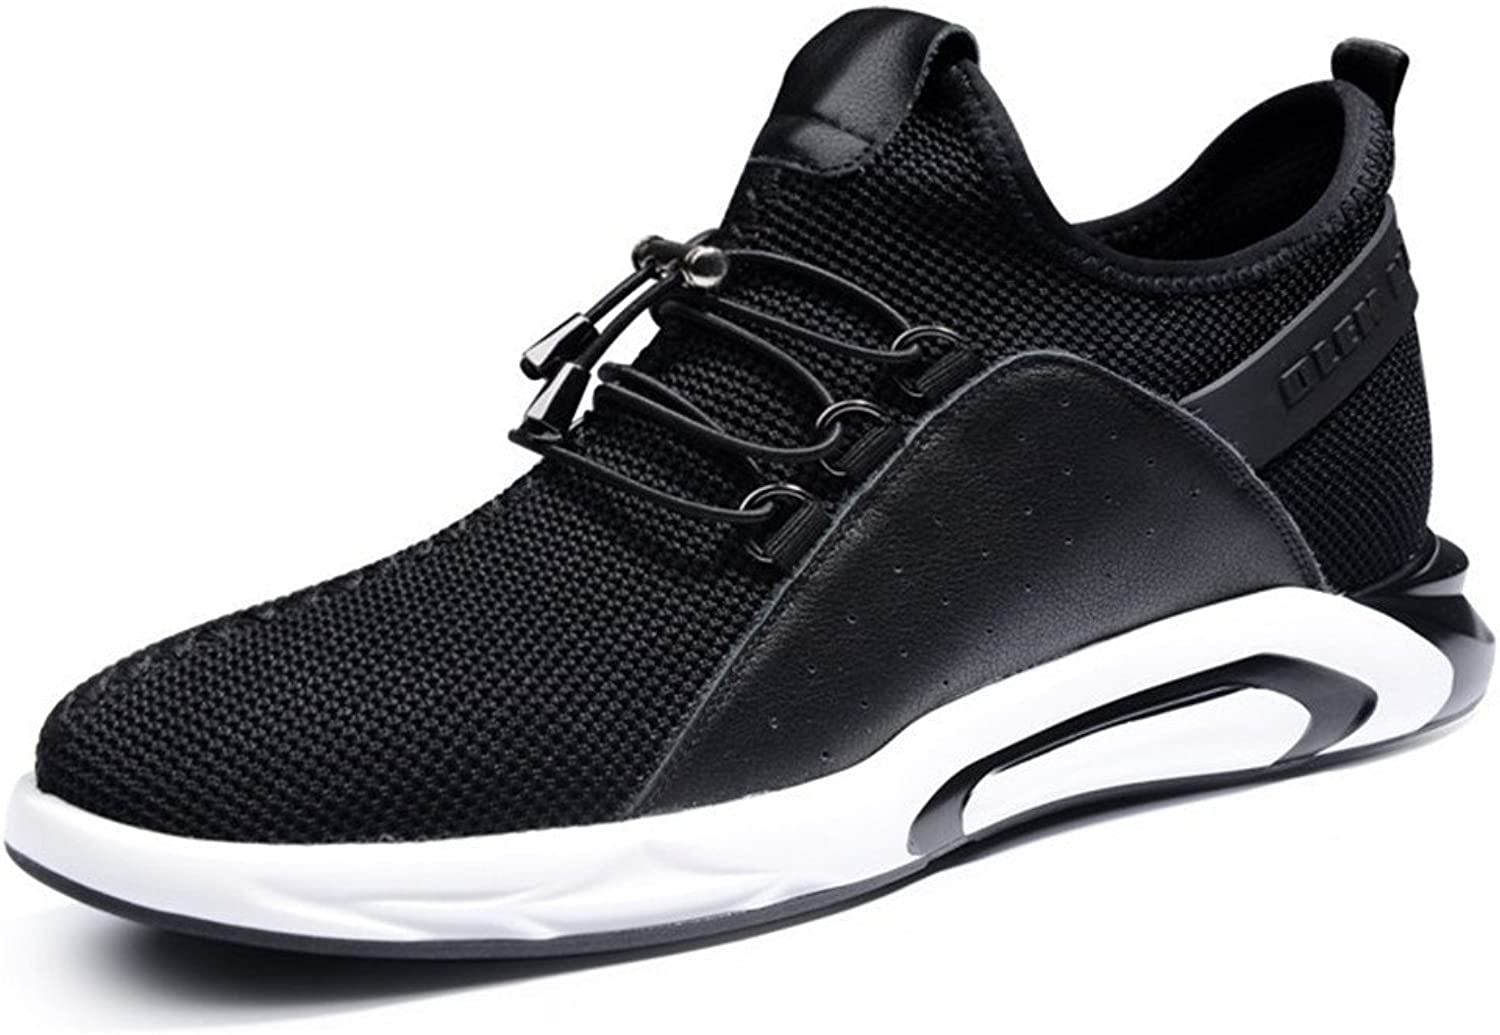 GOG Fashion Men's Mesh Sports shoes Running Sneakers Height Increasing 2.36 inches Black